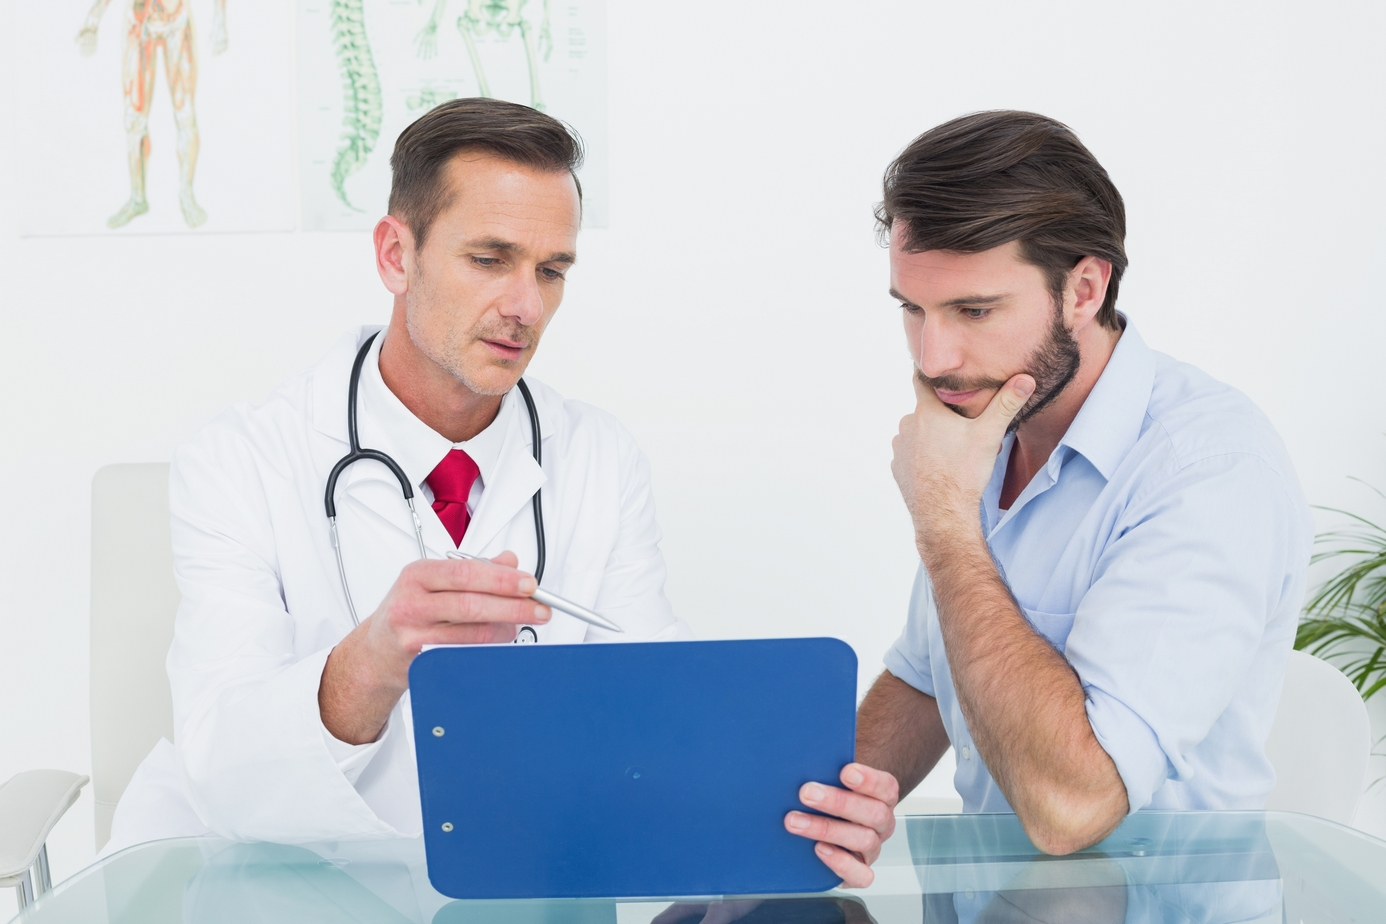 Male doctor discussing reports with patient at desk in medical office